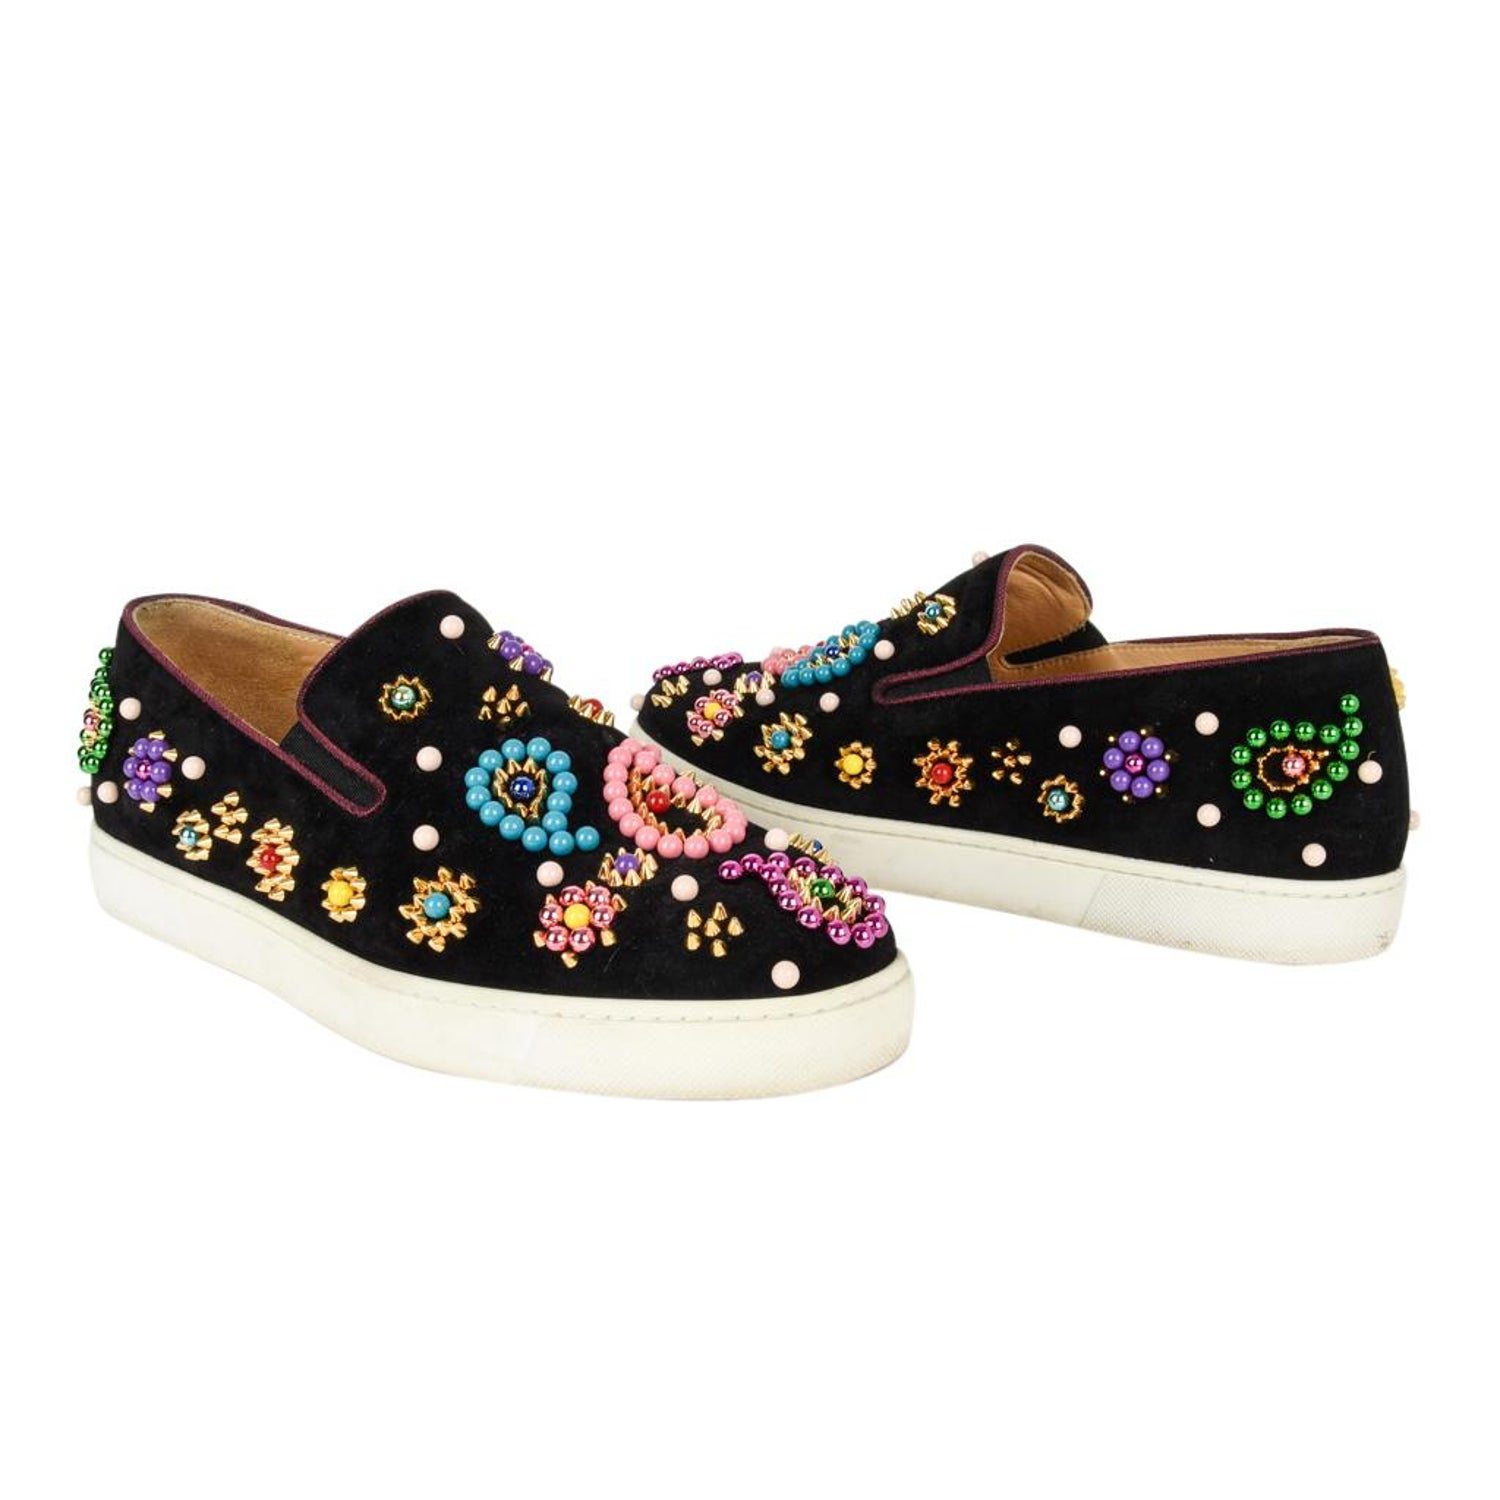 718d6697852 Christian Louboutin Shoe Slip on Sneaker Boat Candy 39 / 9